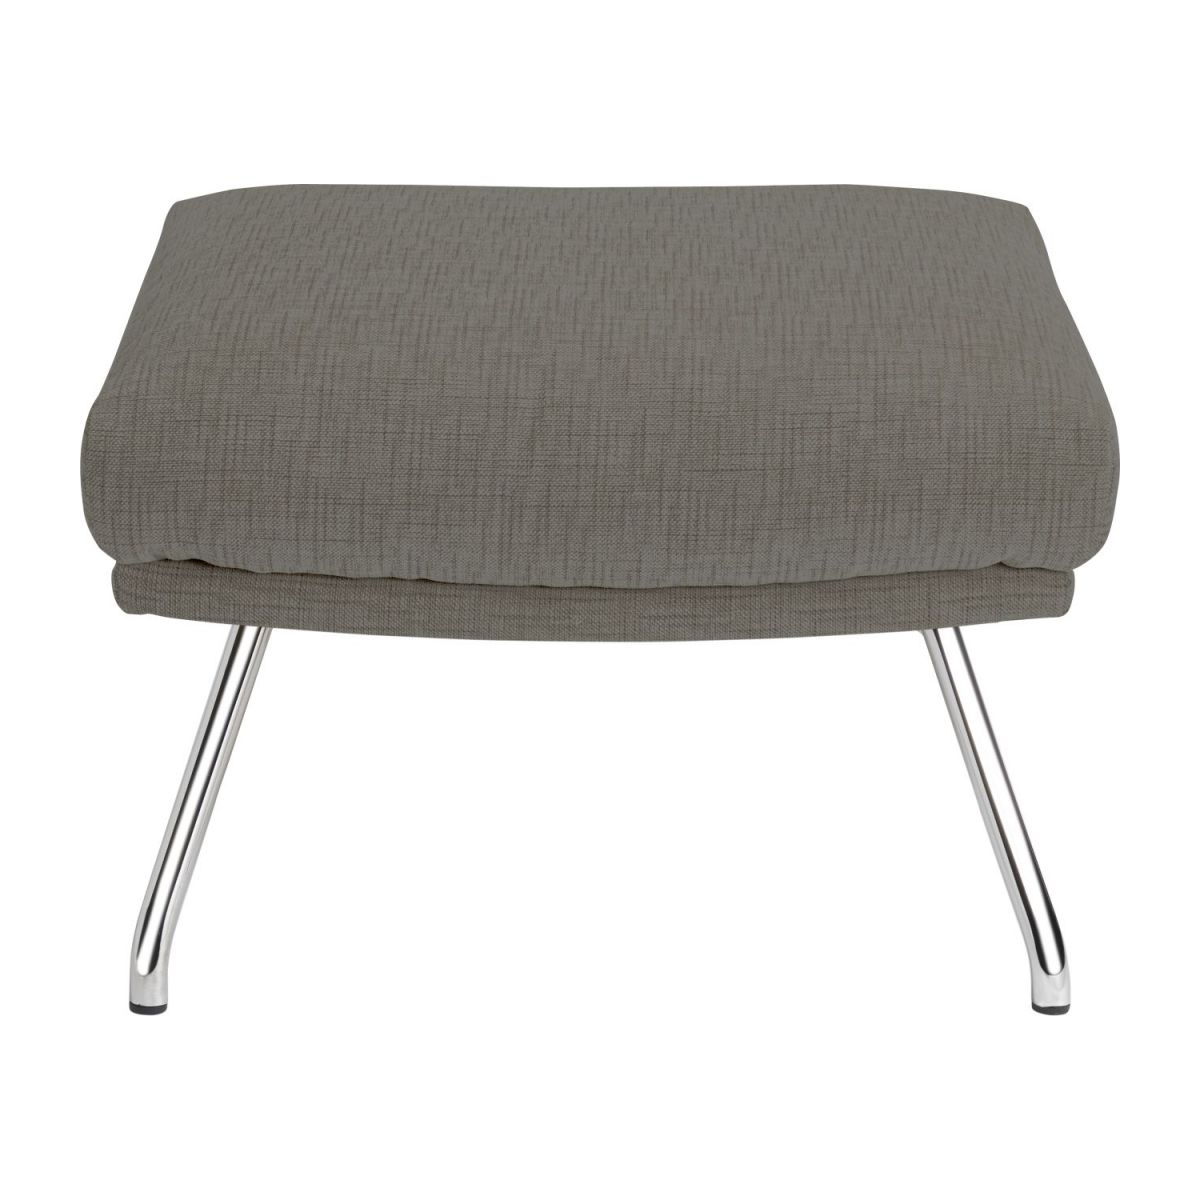 Footstool in Ancio fabric, river rock with chromed metal legs n°2